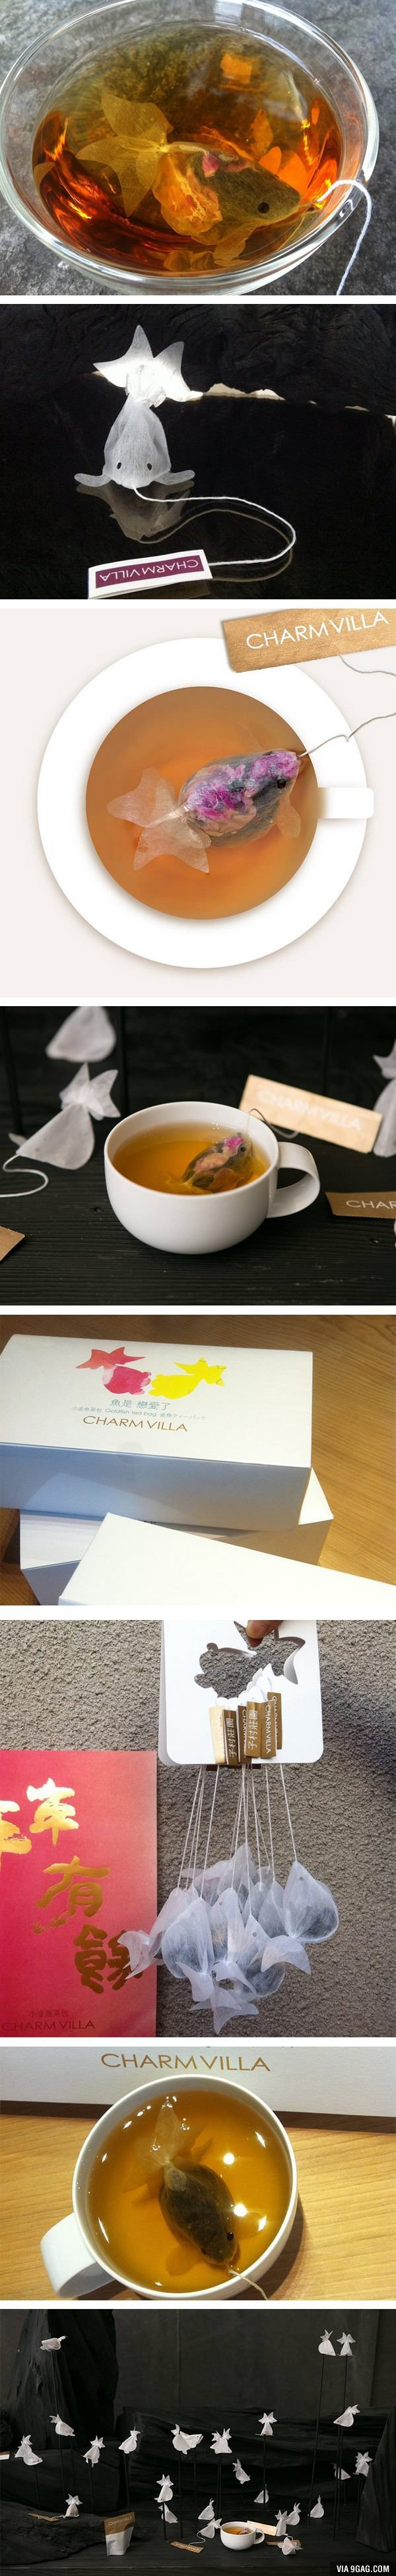 - Tea Packaging - Very clever and interesting - Like the idea of the fish as it is very unusual - Well thought-out